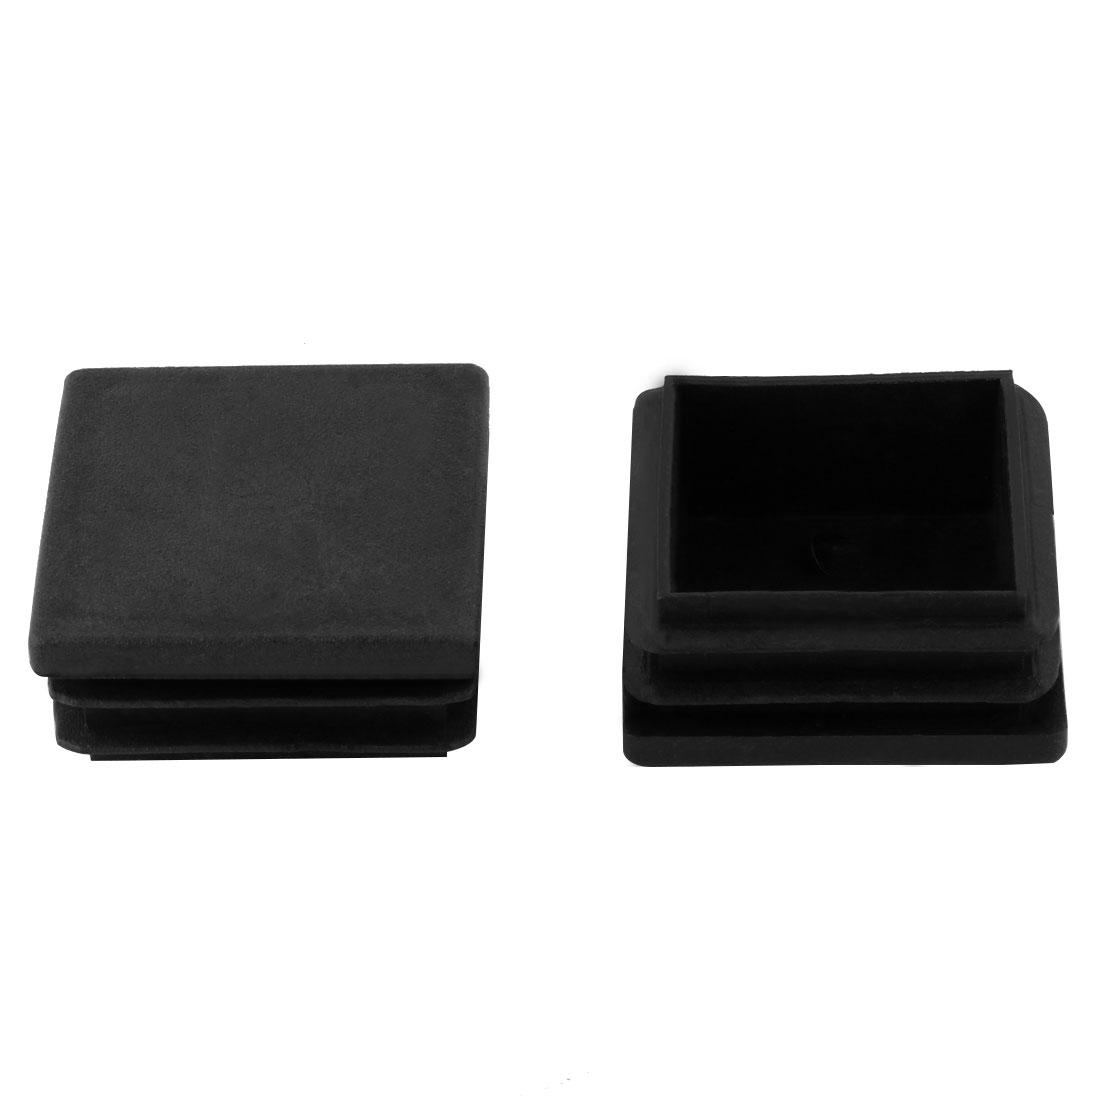 2 Pieces Black Plastic Square Blanking End Caps Tubing Tube Inserts 40mm x 40mm